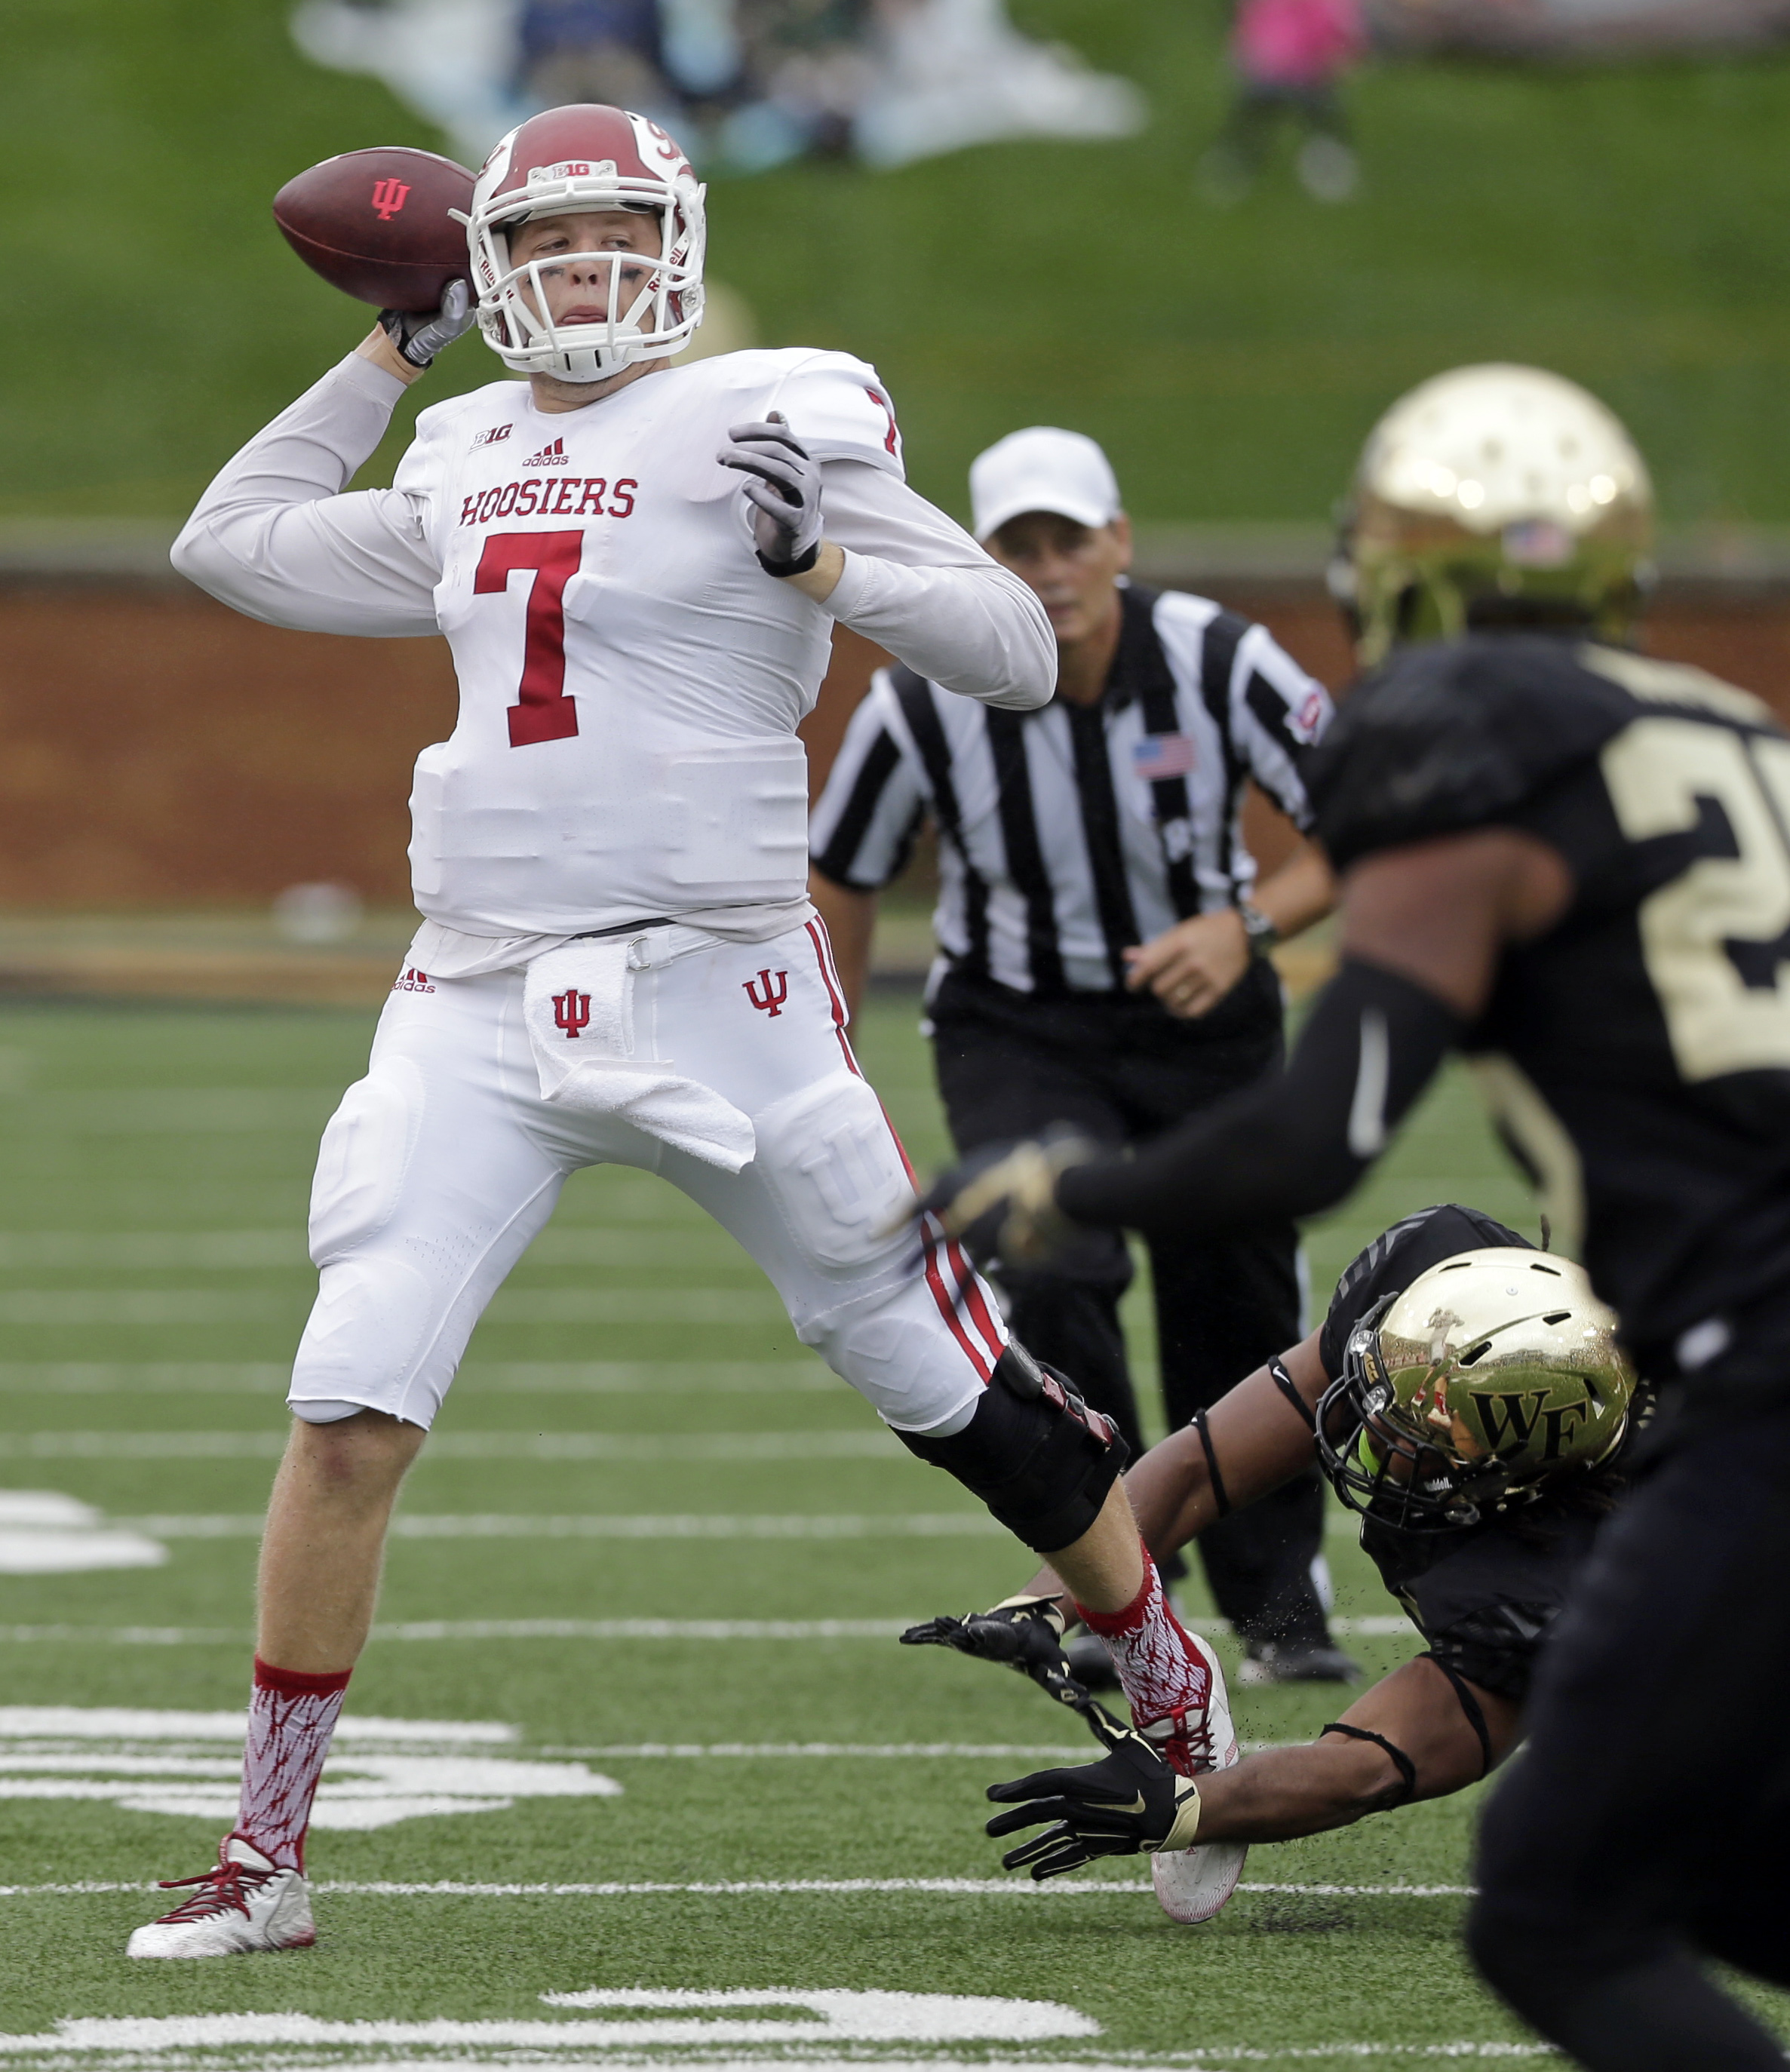 Indiana's Nate Sudfeld (7) looks to pass against Wake Forest during the first half of an NCAA college football game in Winston-Salem, N.C., Saturday, Sept. 26, 2015. (AP Photo/Chuck Burton)